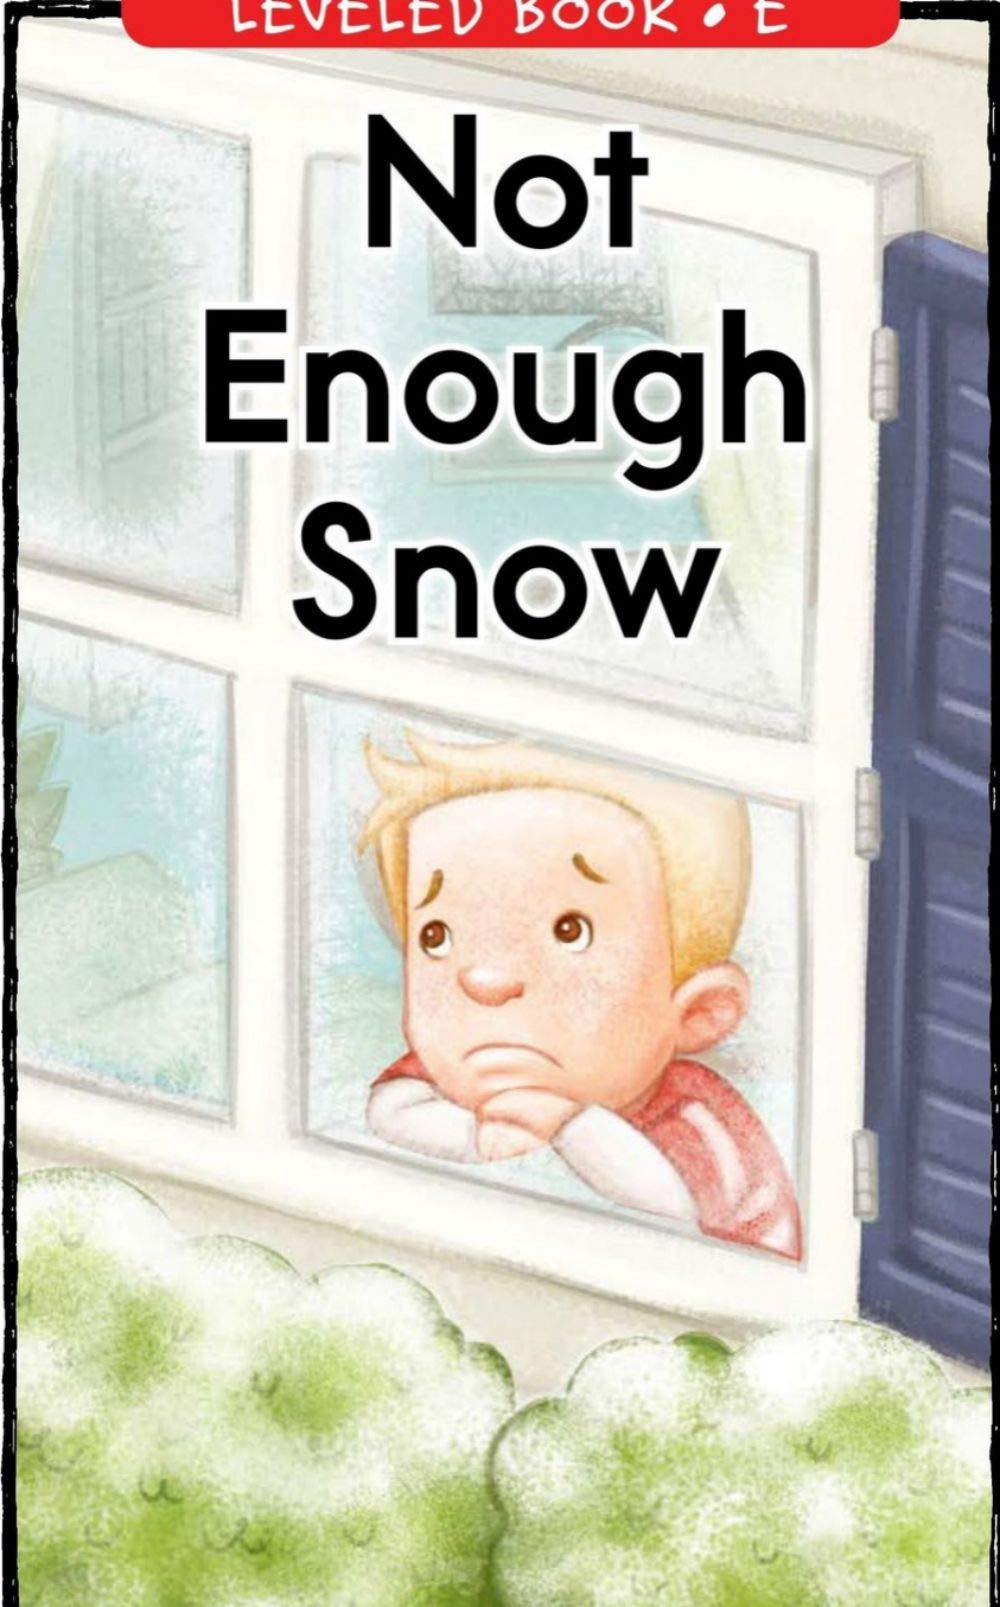 Not Enough Snow: Picture books for children's Enlightenment